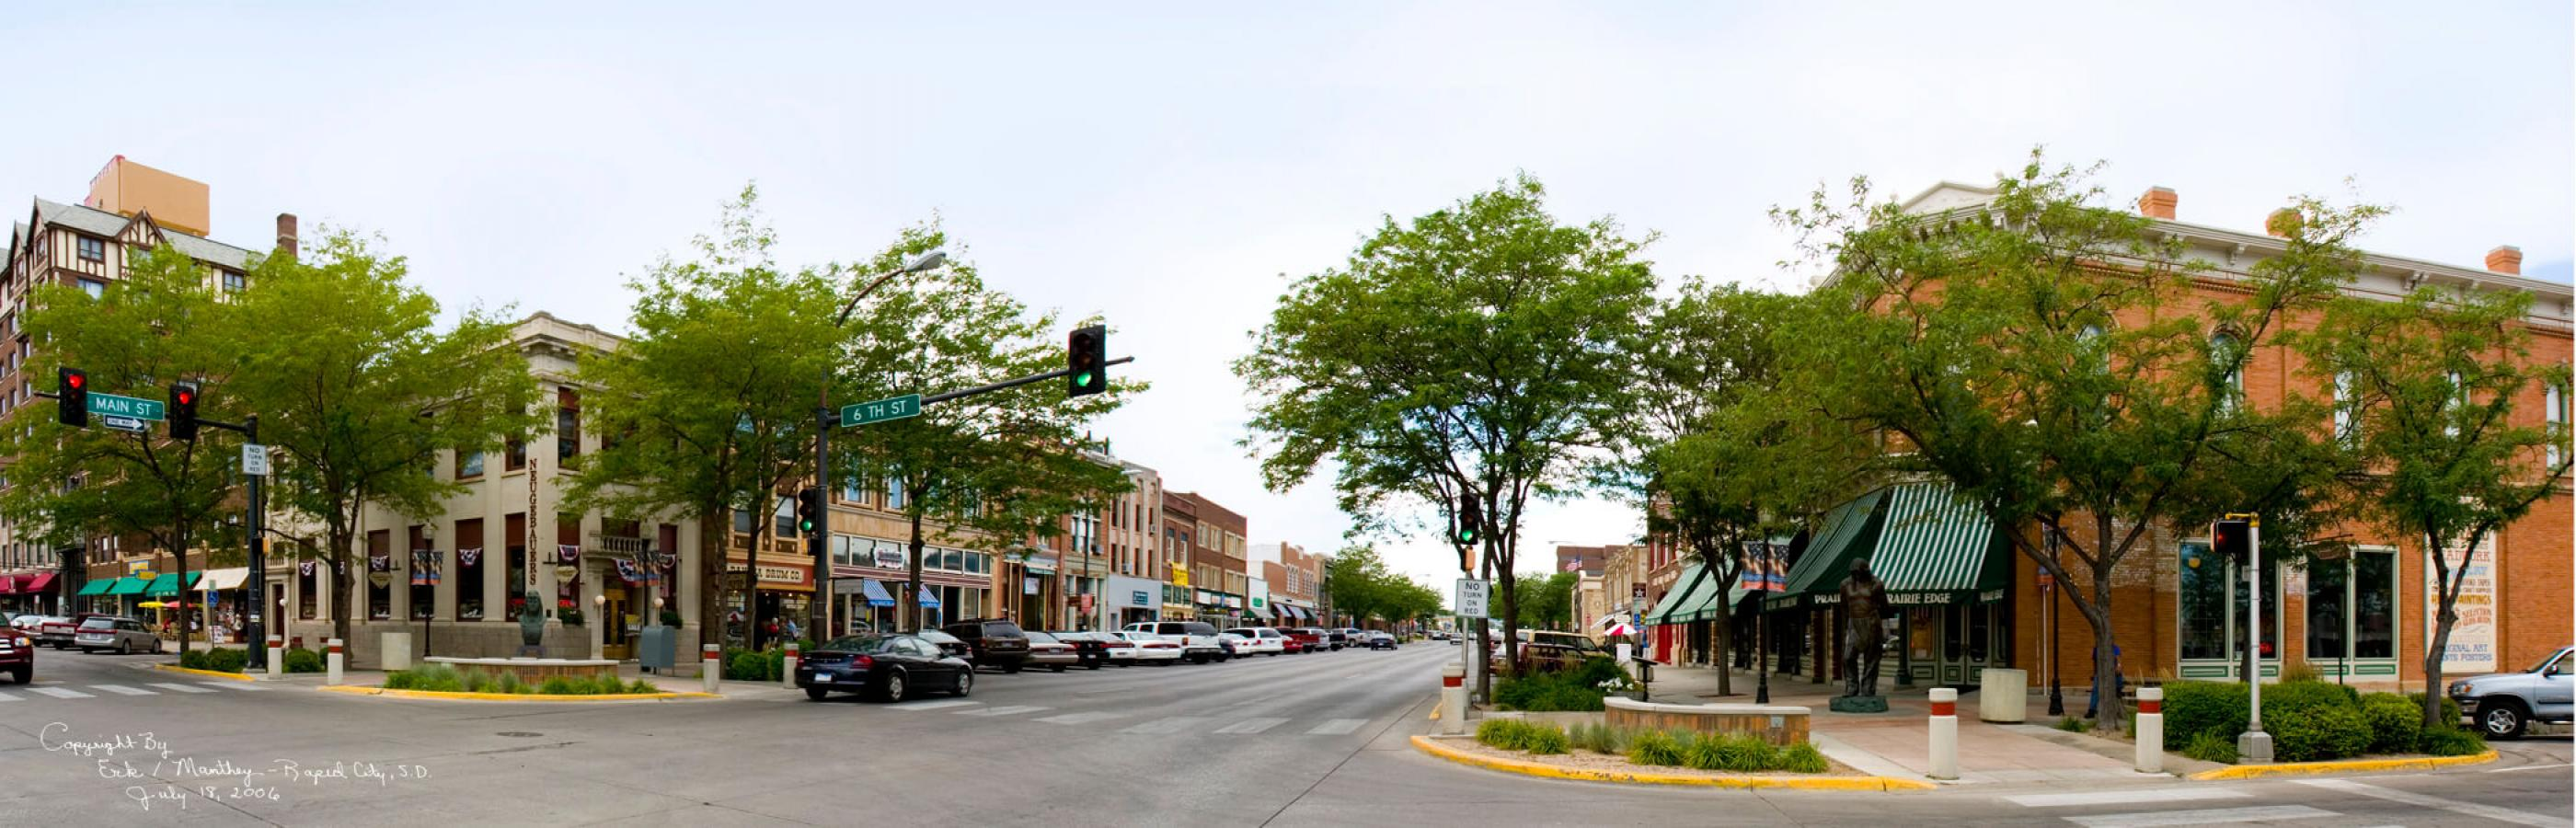 Pano of Downtown Rapid City, SD